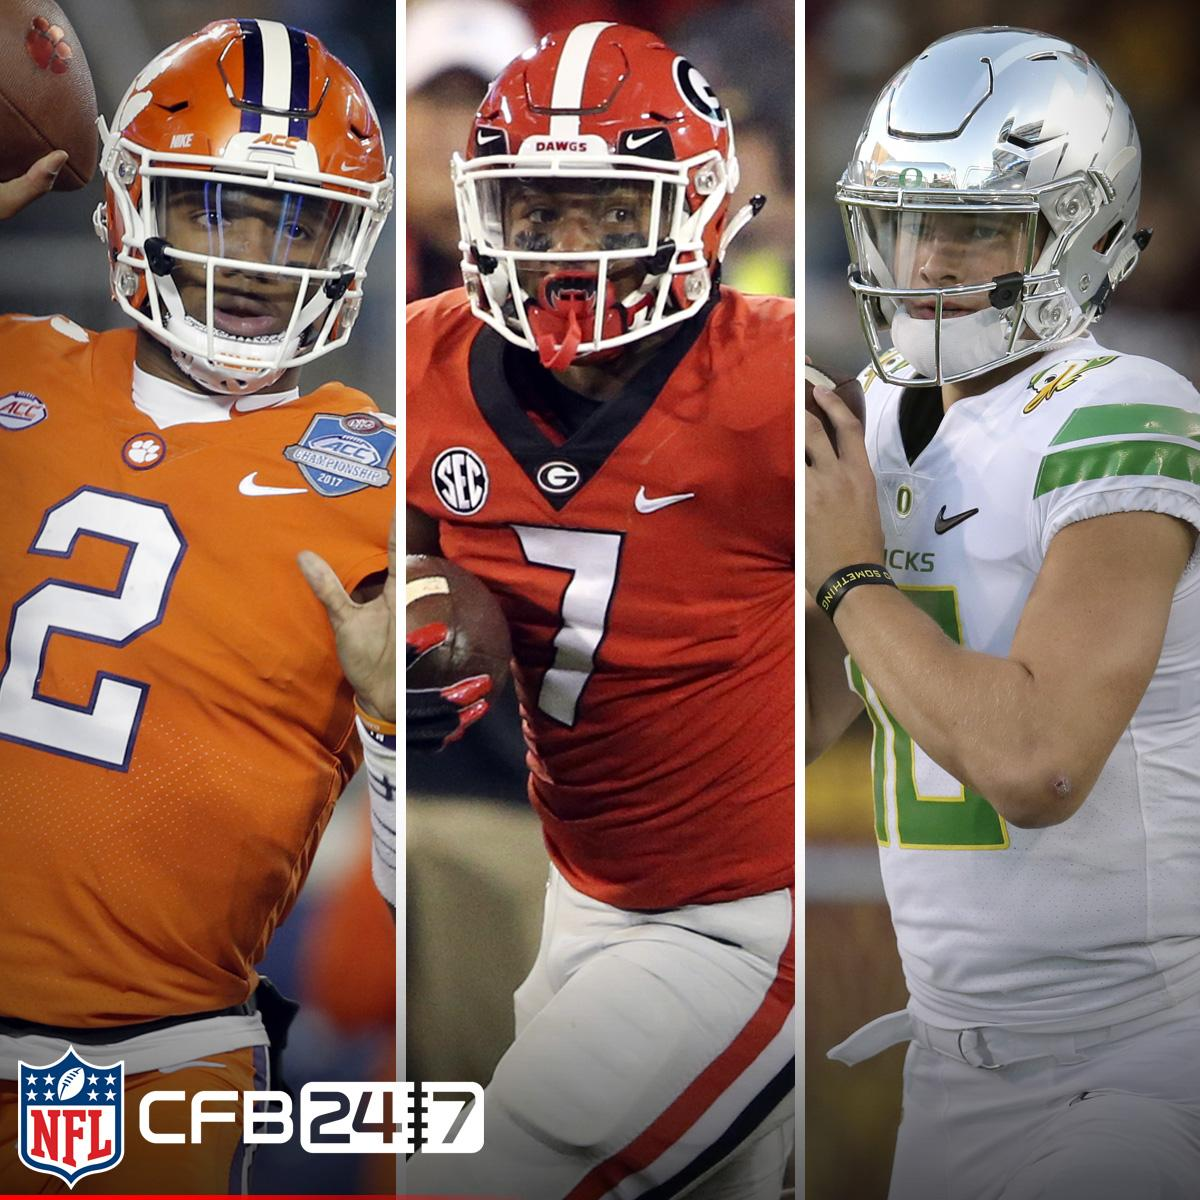 Top 10 #Heisman candidates for 2018  1. Kelly Bryant, @ClemsonFB 2. D'Andre Swift, @FootballUGA 3. Justin Herbert, @WinTheDay 4-10: https://t.co/c1V6cuQ6iu